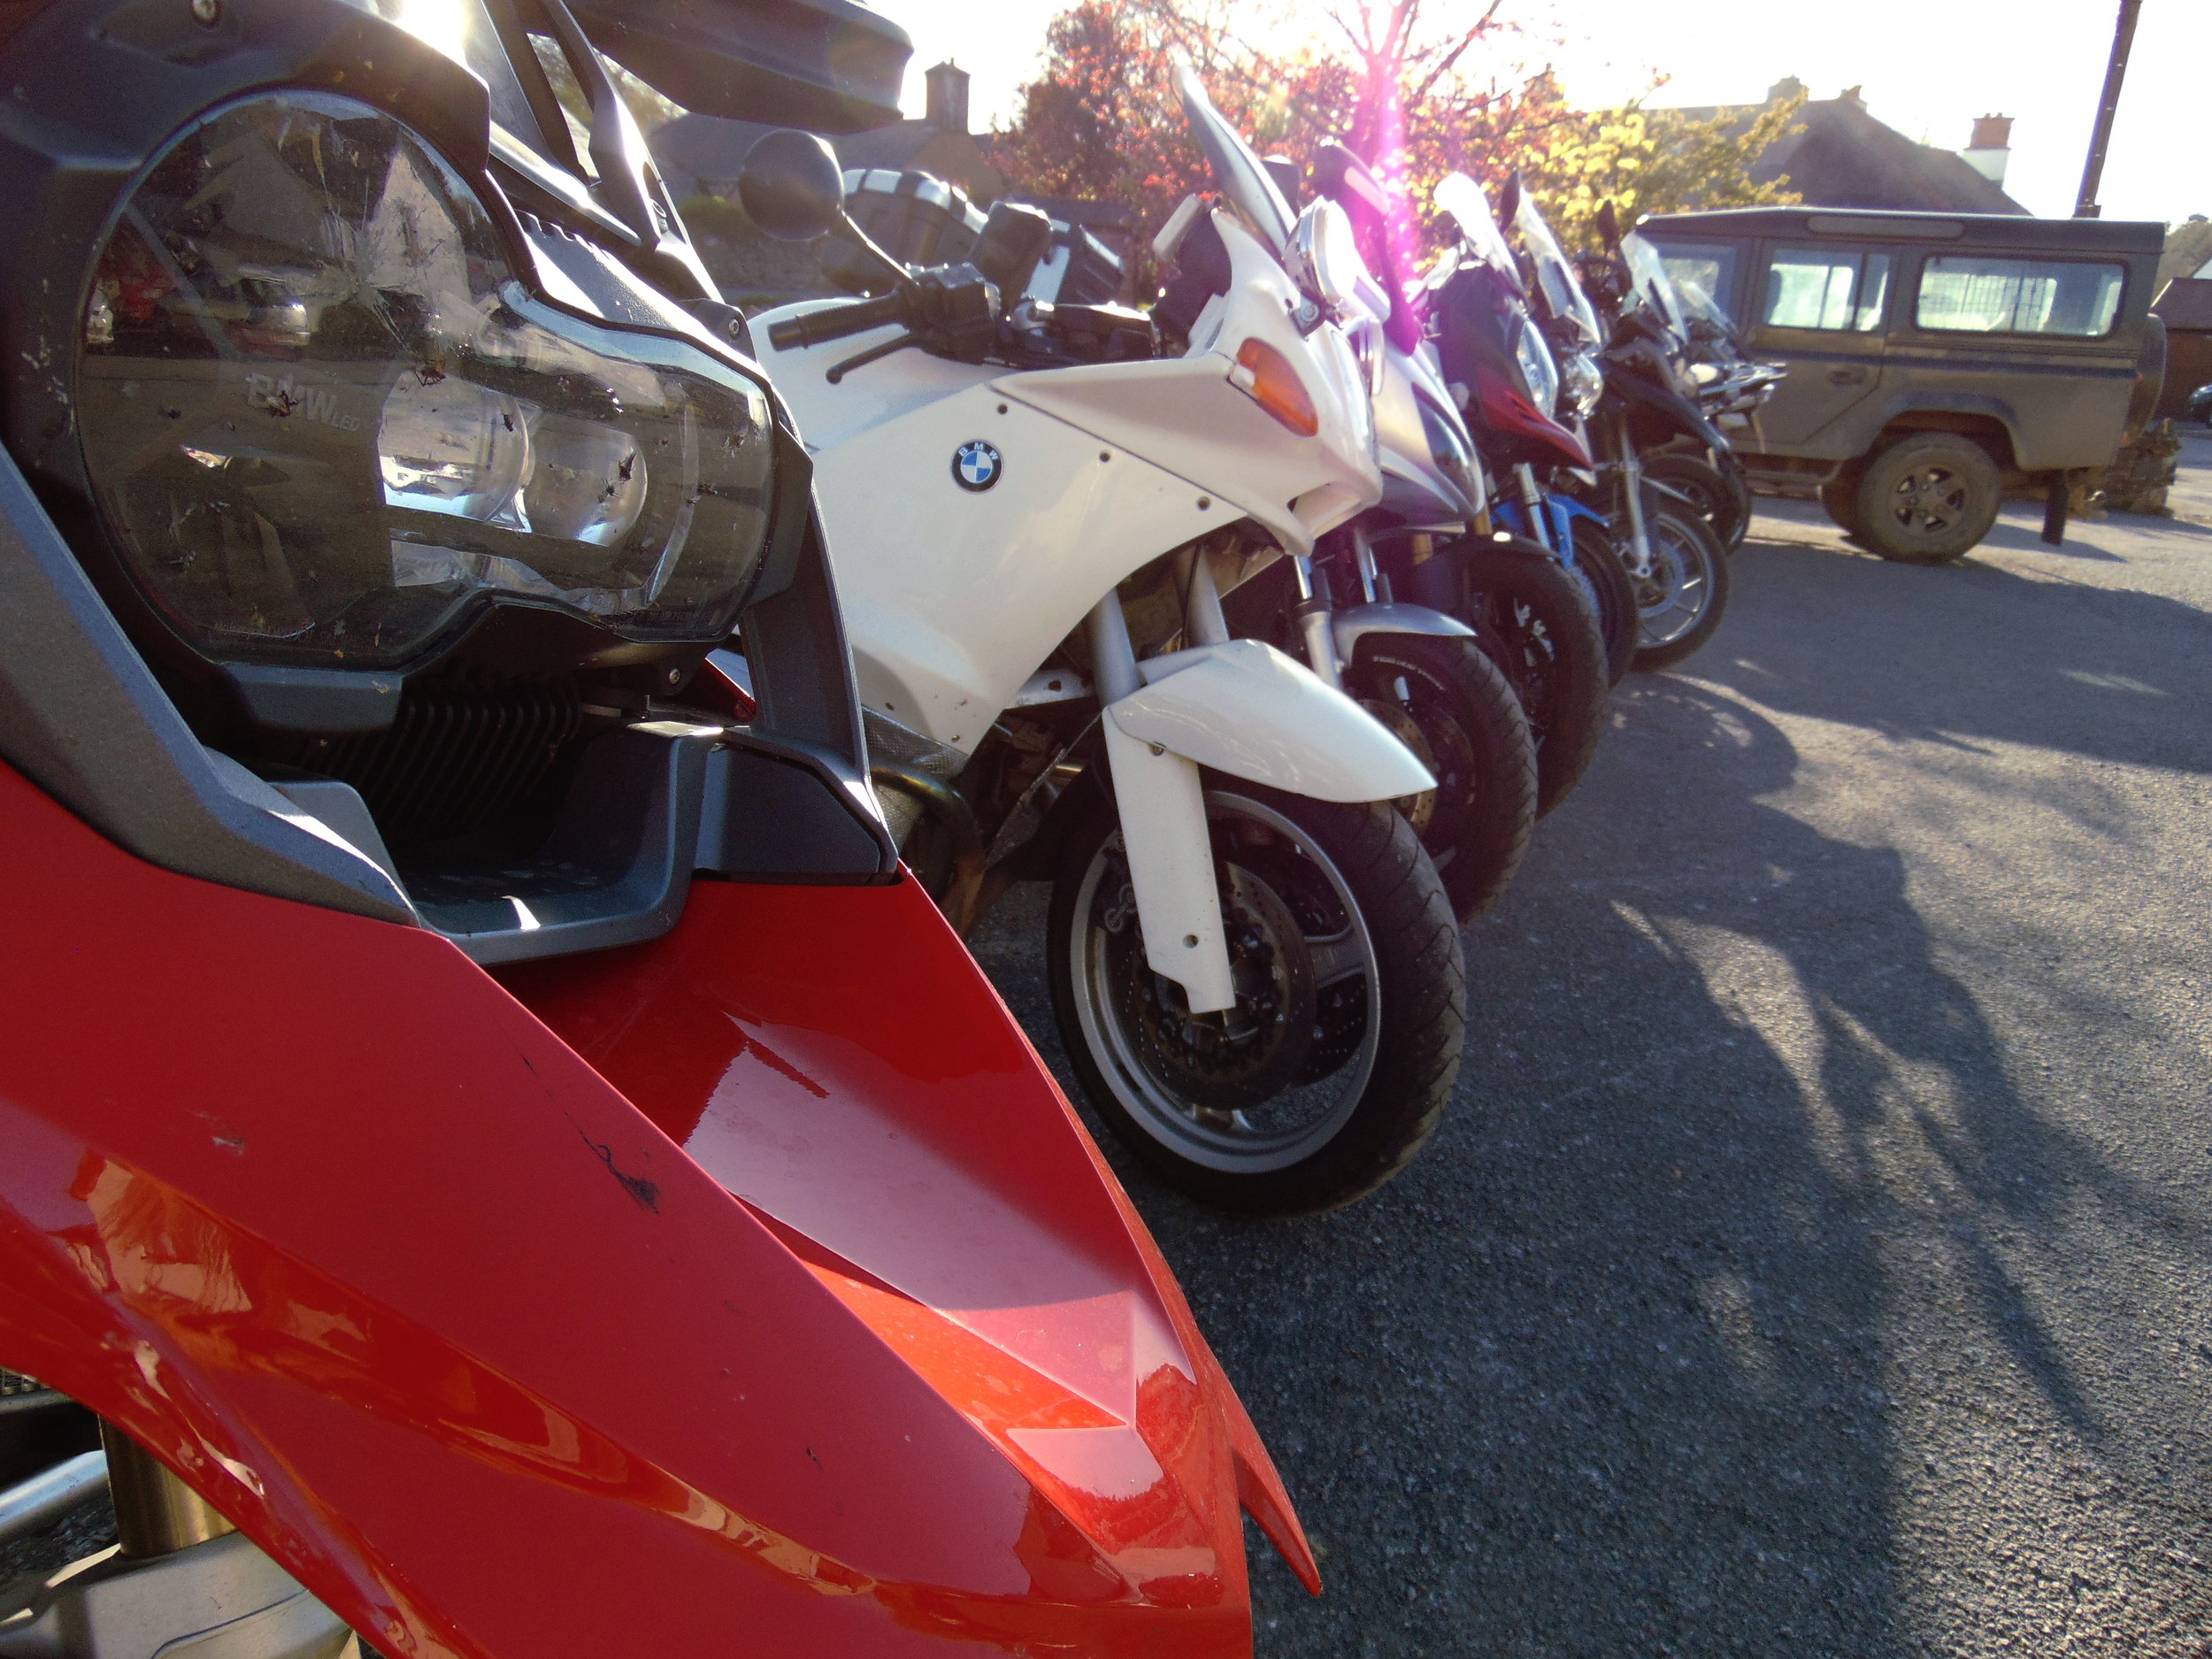 The-White-Hart-Inn-Bridestowe-Devon-Motorbikes-Touring-Annual-Visit-BMW-Bikes.JPG